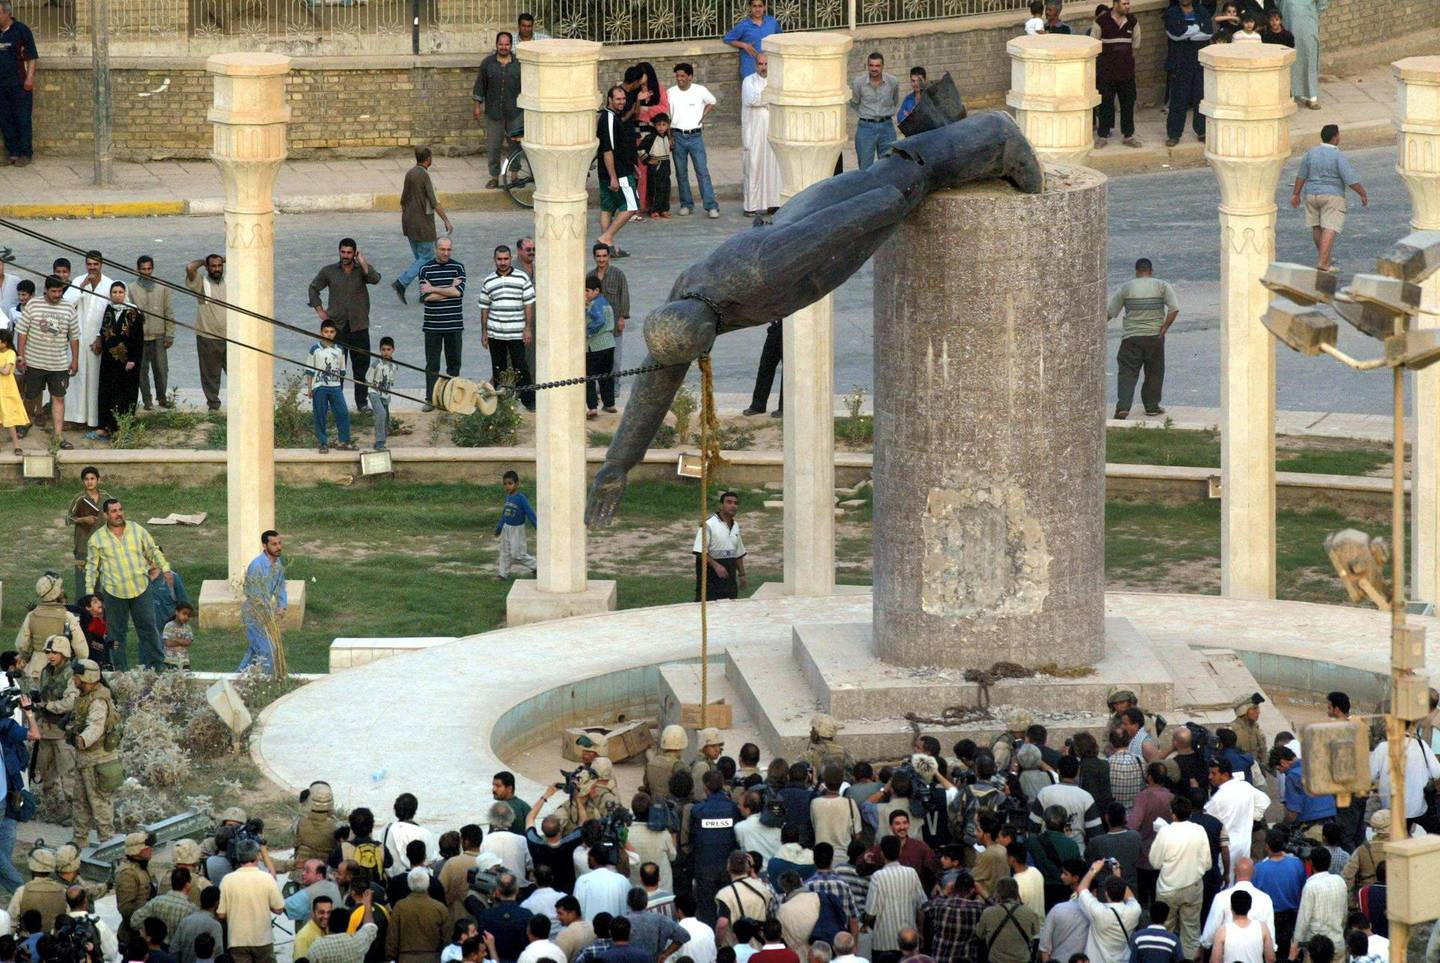 (FILES) In this file photo taken on April 9, 2003 Iraqis watch a statue of Iraqi President Saddam Hussein falling in Baghdad's al-Fardous (paradise) square. On April 9, 2003, the US-led coalition overthrew Saddam Hussein. Fifteen years after the invasion, life in Iraq has been transformed as sectarian clashes and jihadist attacks have divided families and killed tens of thousands of people, leaving behind wounds that have yet to heal and a lagging economy. / AFP PHOTO / Patrick BAZ